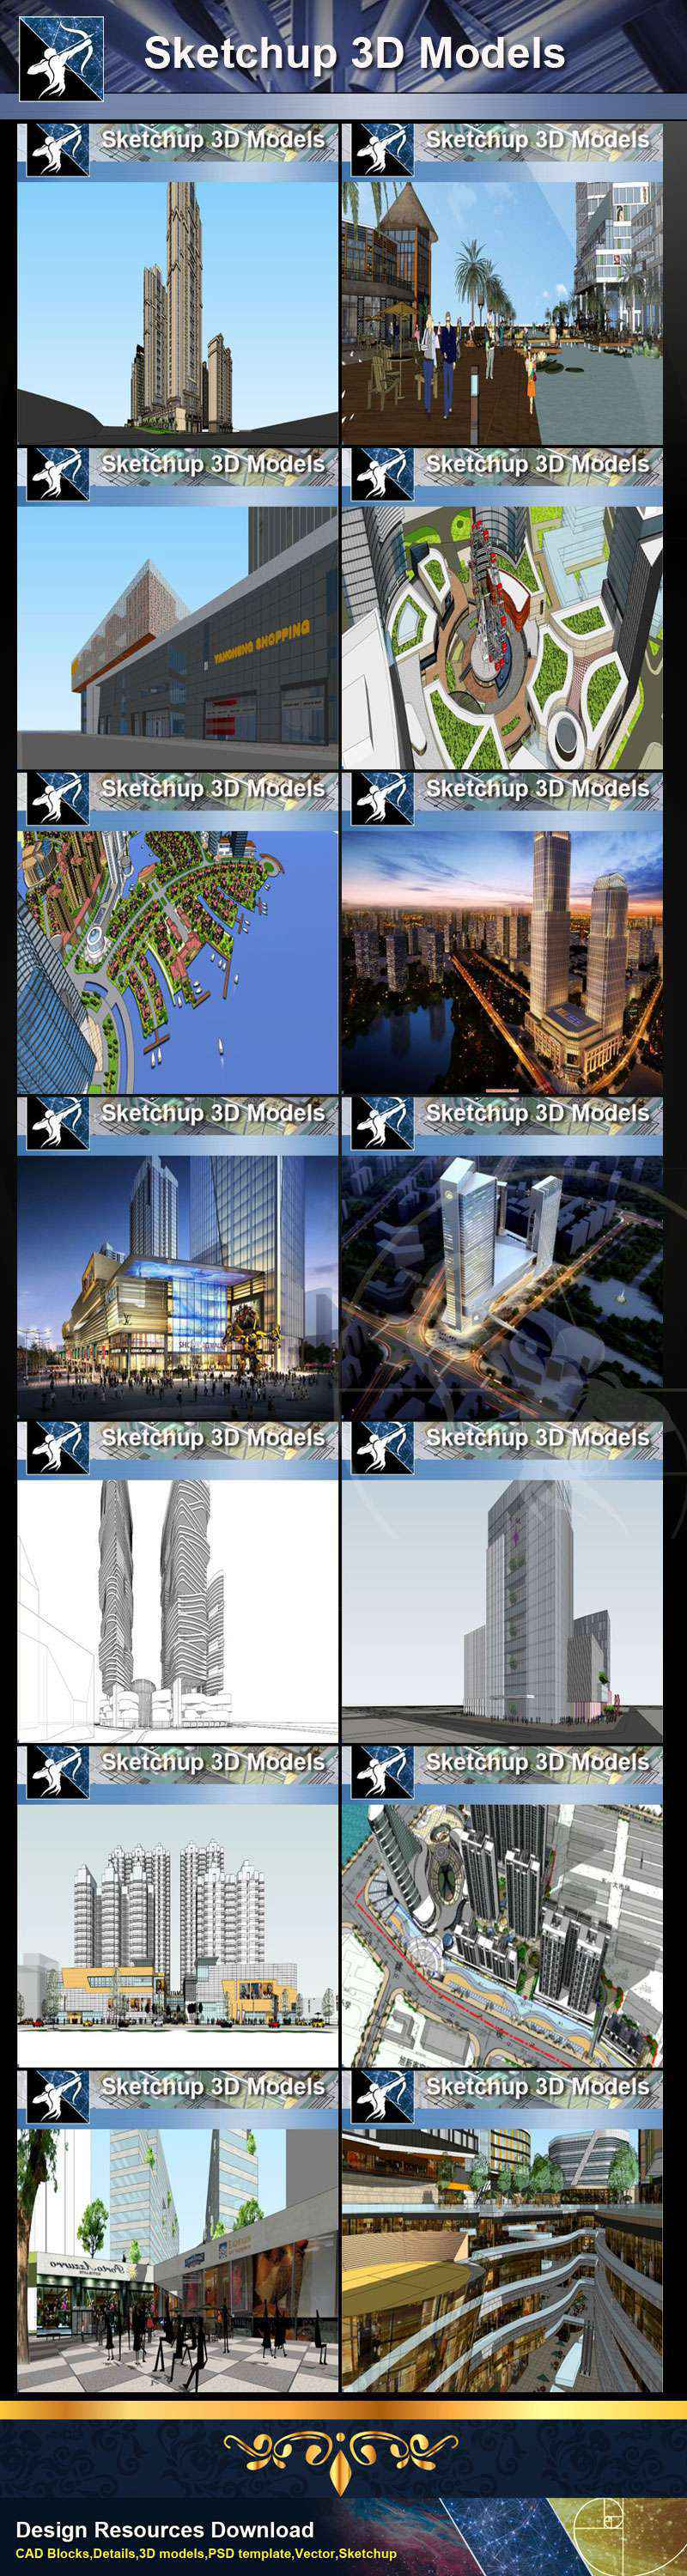 ★Best 25 Types of Mix Commercial,Residential Building Sketchup 3D Models Collection